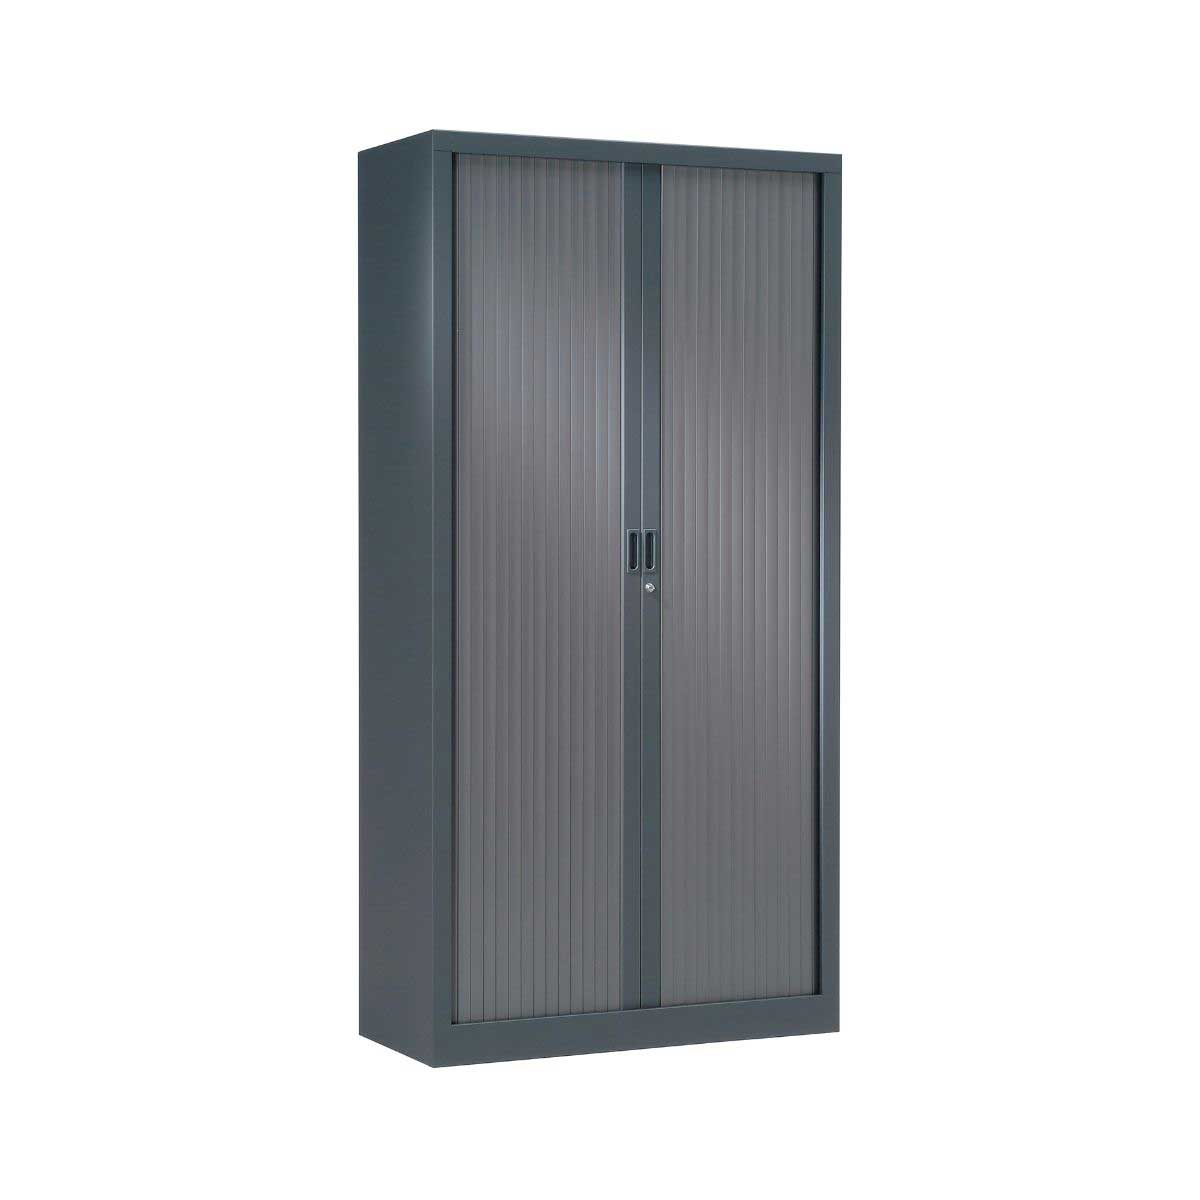 Pierre Henry Generic Tambour Cupboard Height 1980mm, Anthracite